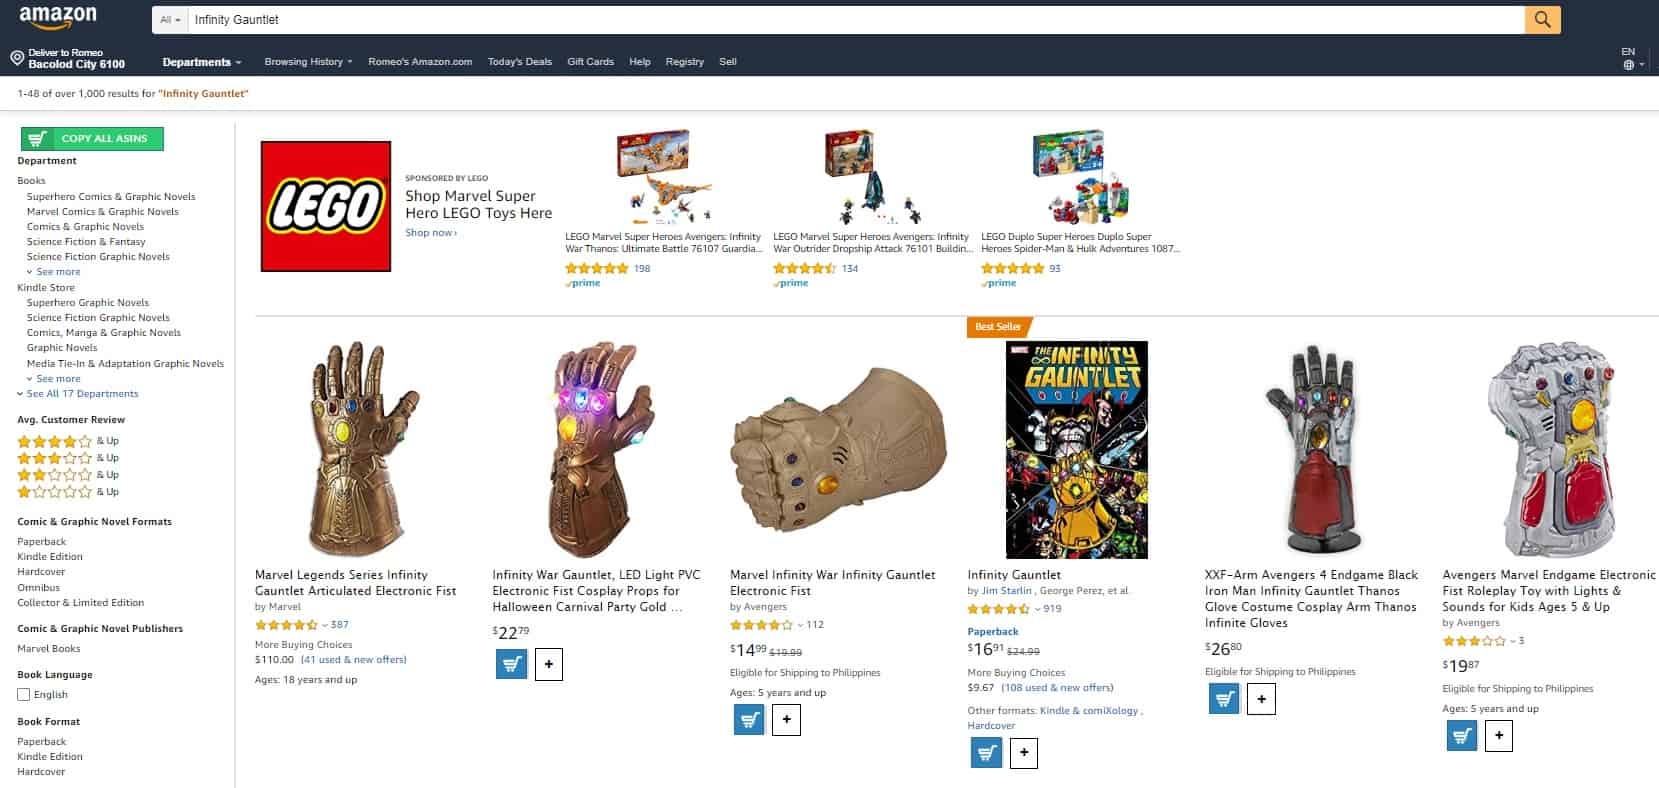 Amazon product search